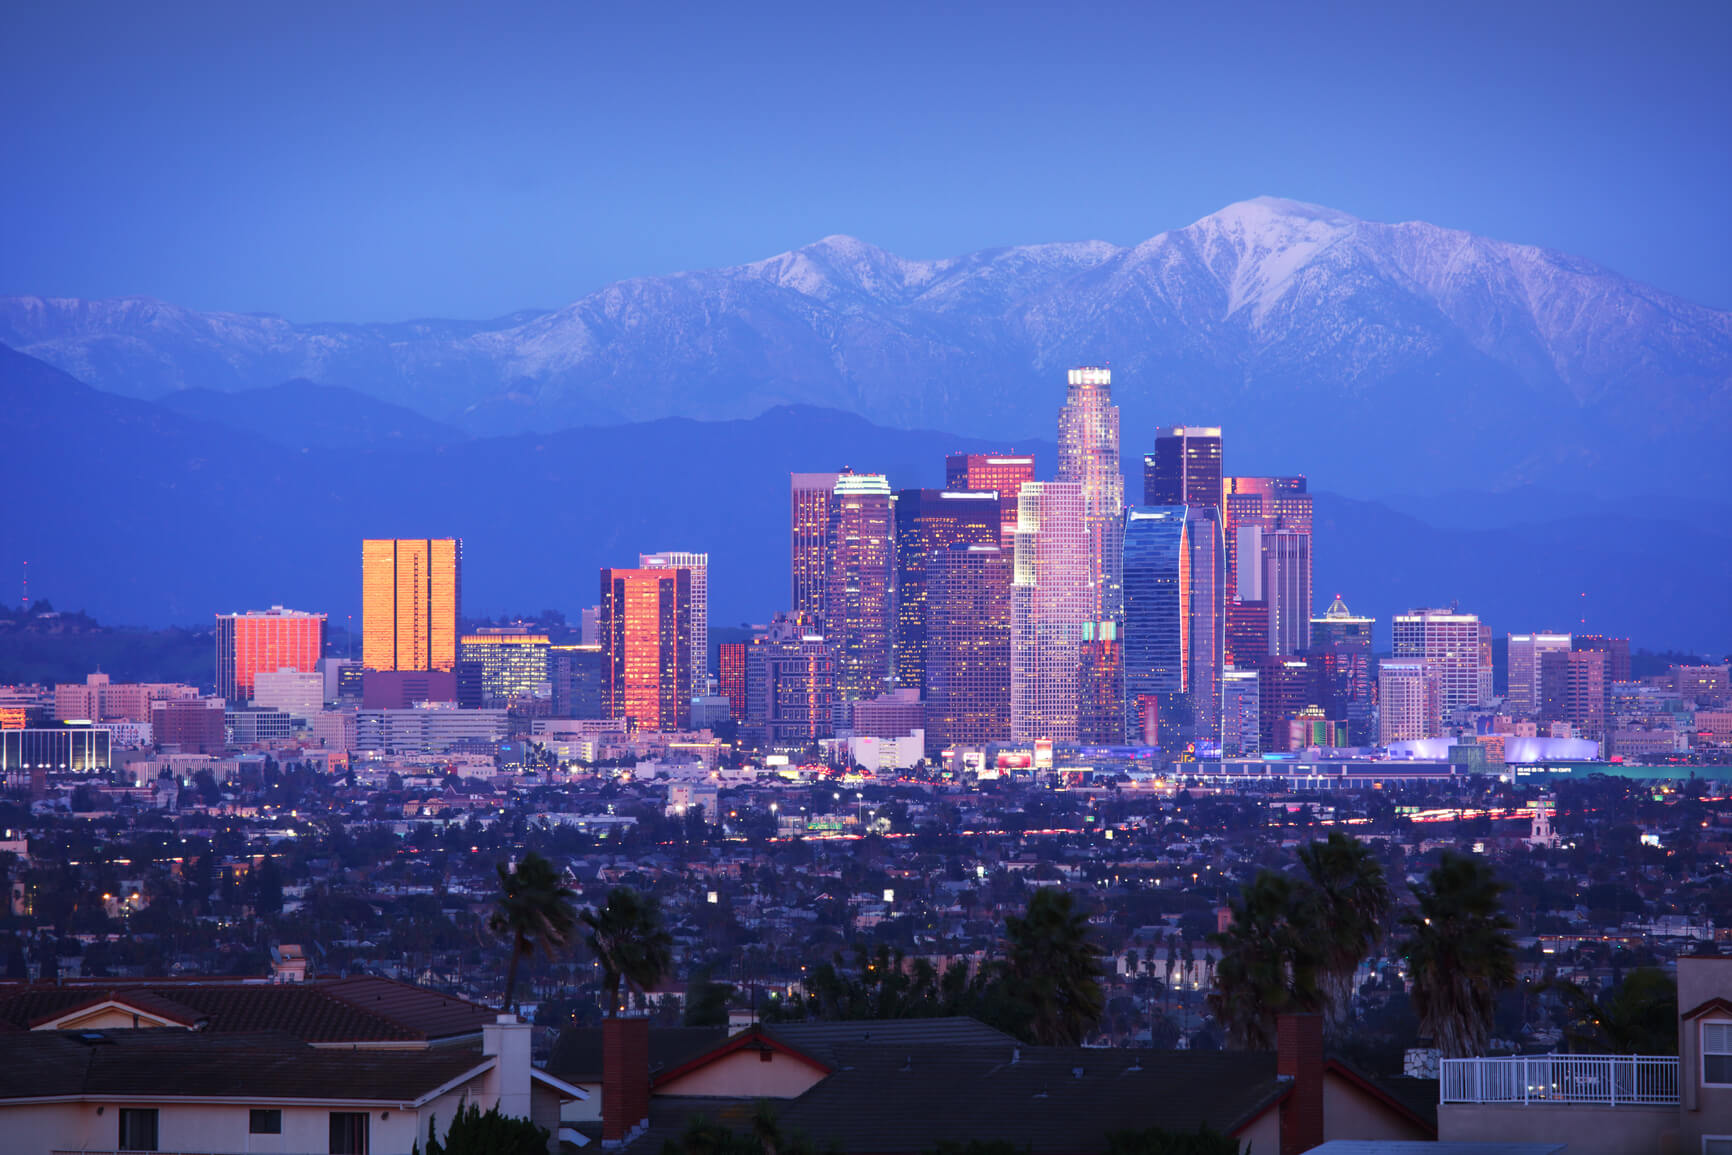 Non-stop from Dublin, Ireland to Los Angeles, USA for only €341 roundtrip